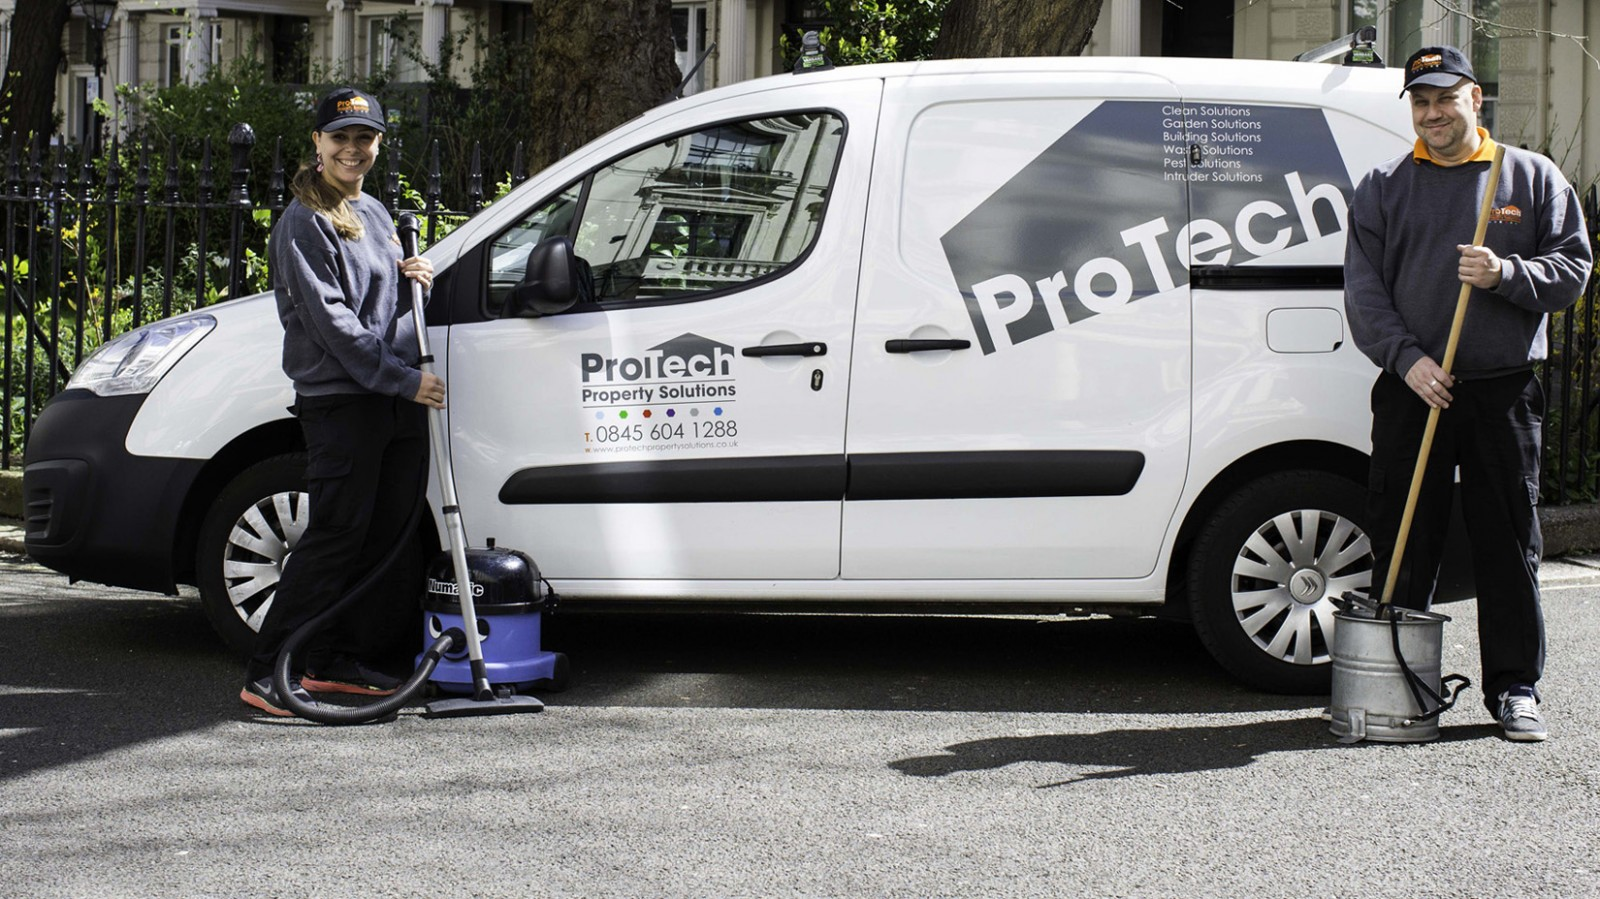 Contract Cleaning Costs